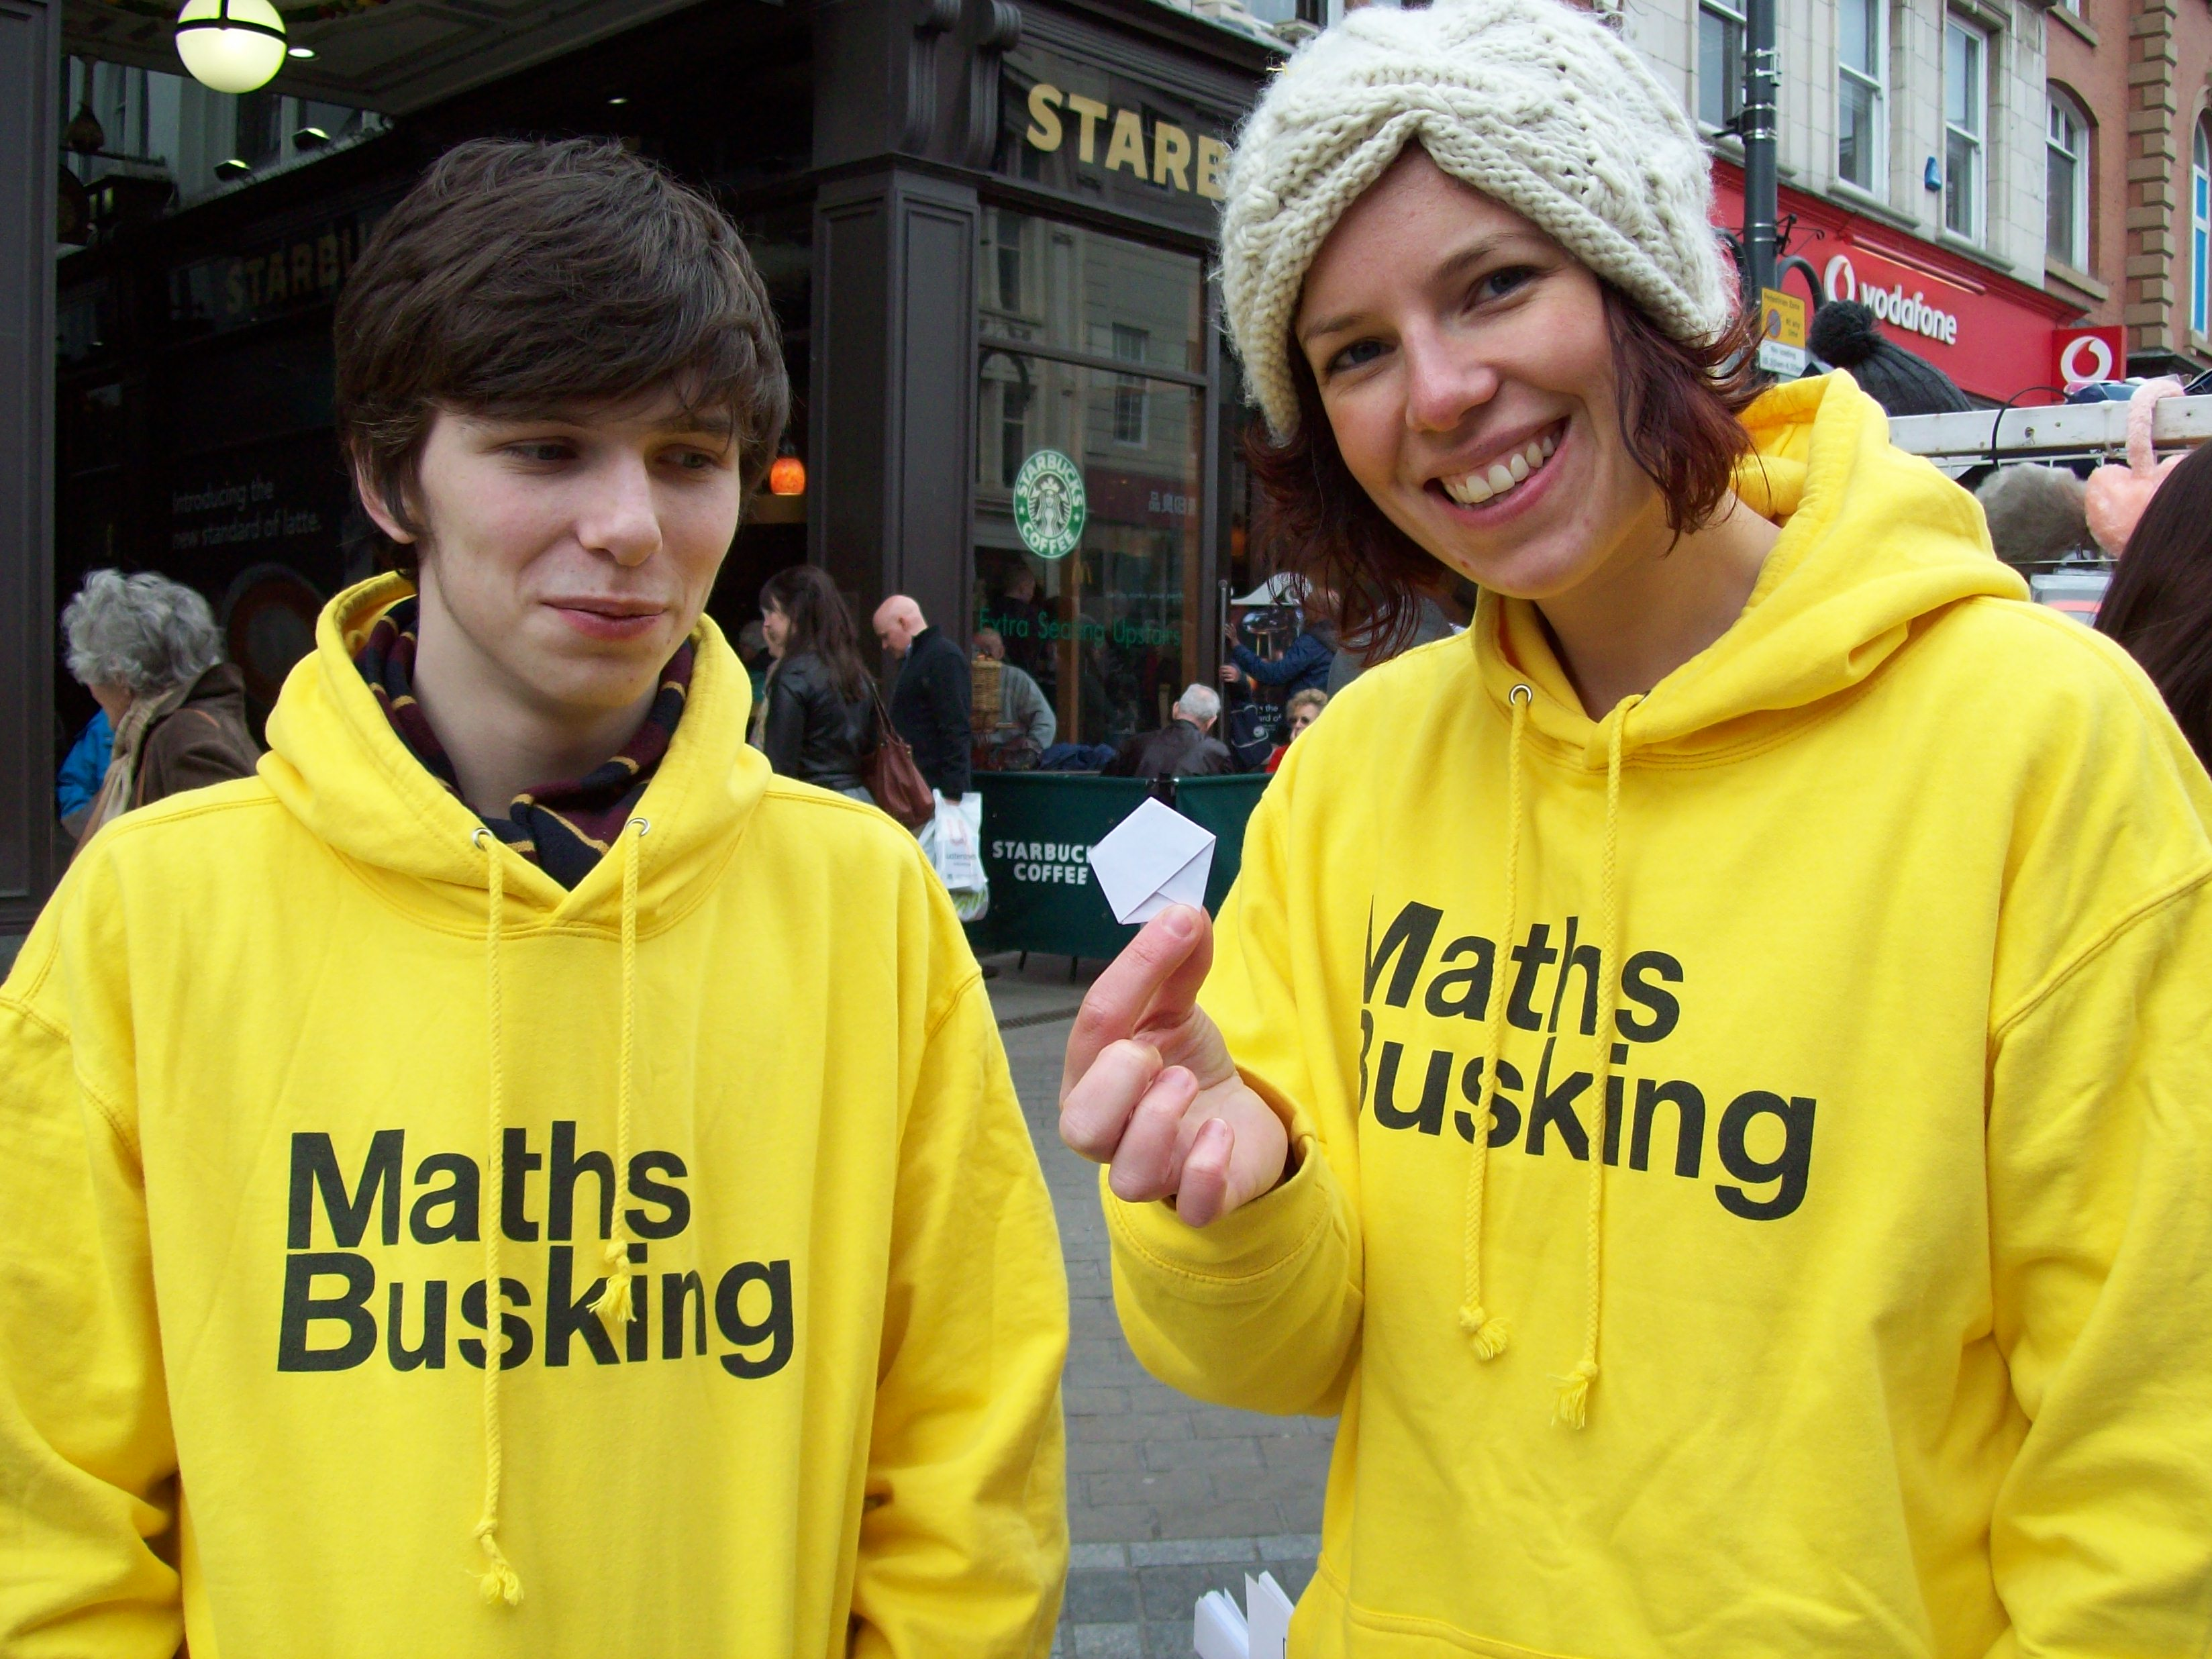 Maths Busking in Leeds